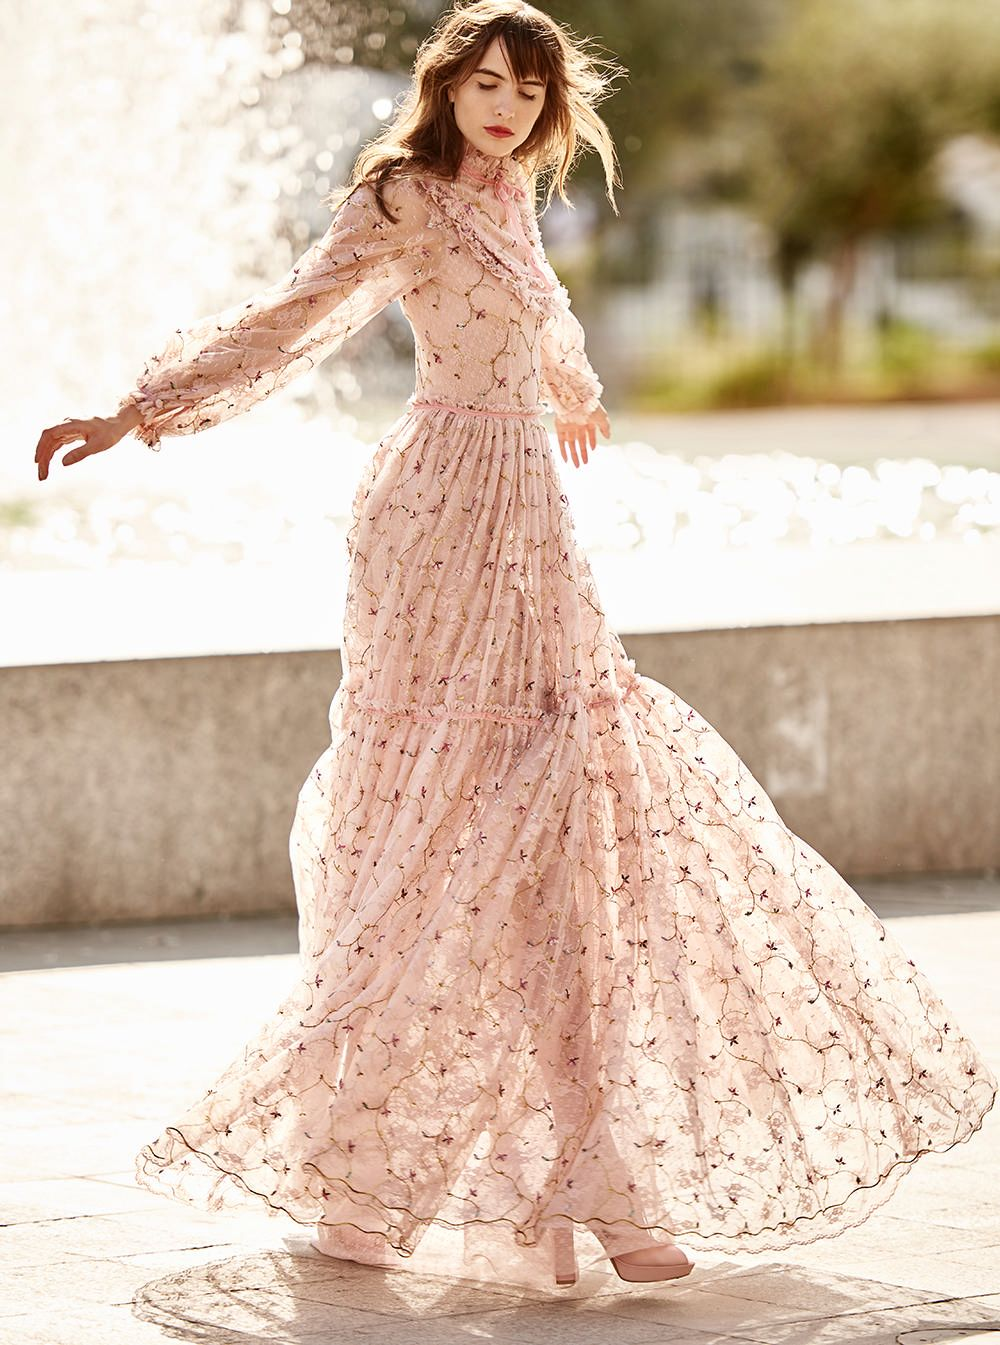 299fc9e50b Costarellos Spring Summer 2018 Collection  br   SS18-40 br   Victorian  Style Long Dress